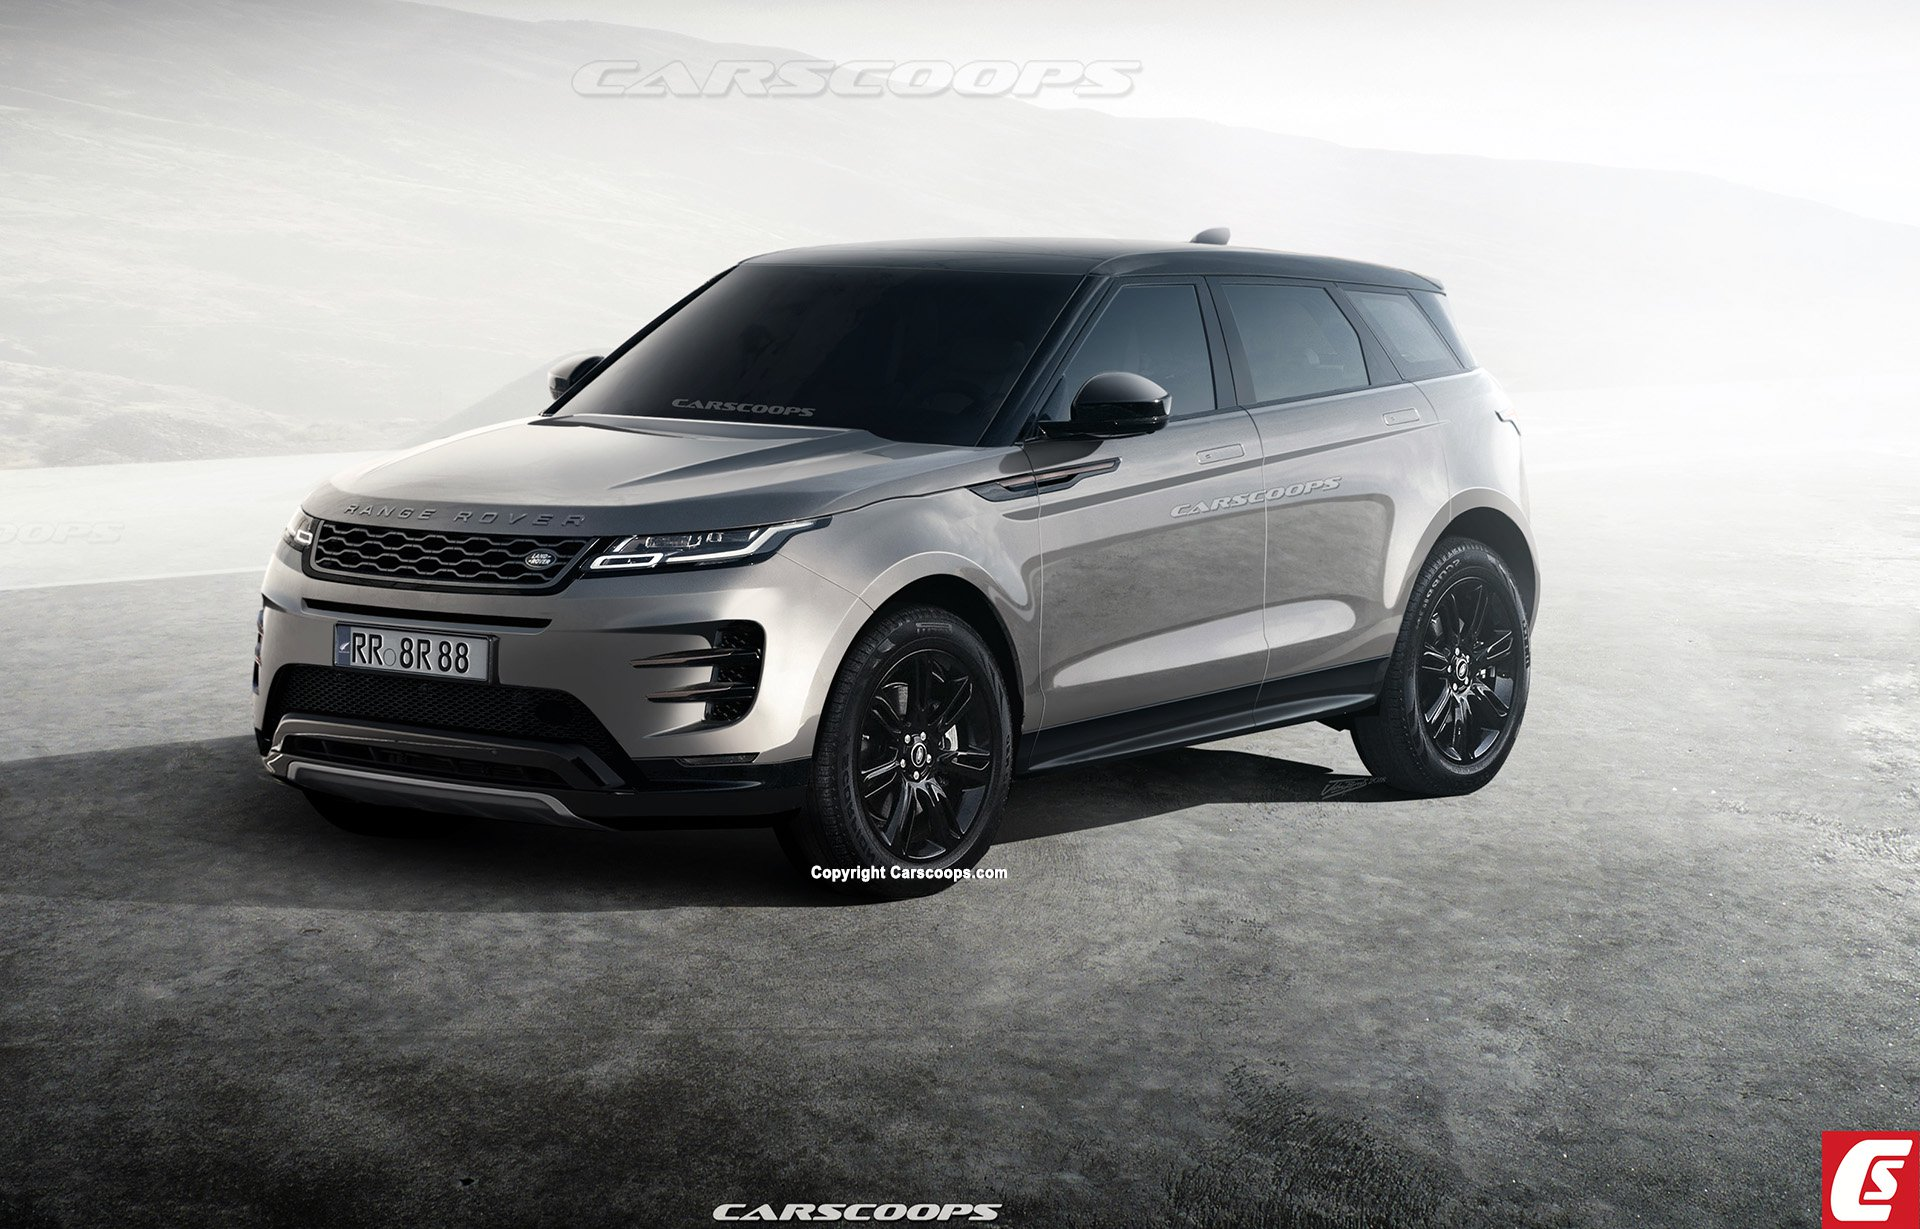 47 The 2020 Range Rover Evoque Release Date